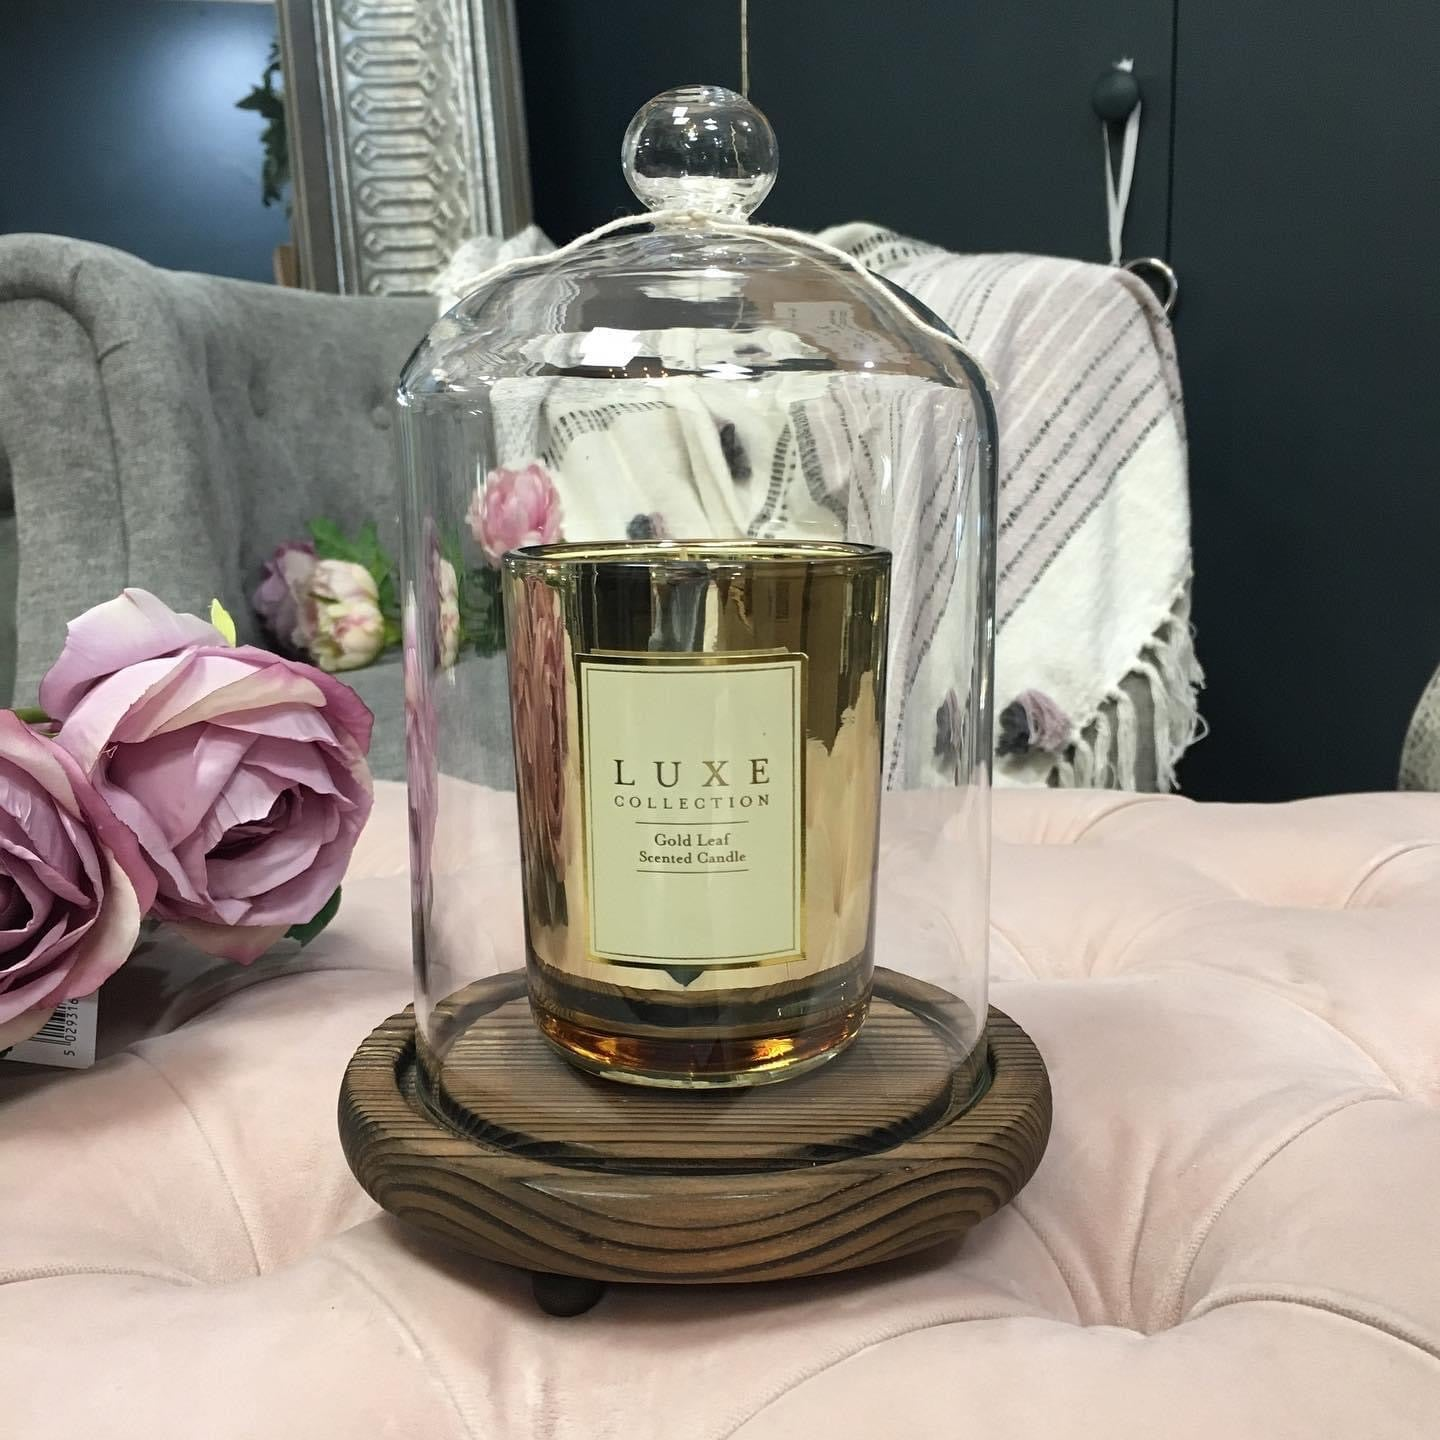 Luxe gold leaf scented candle